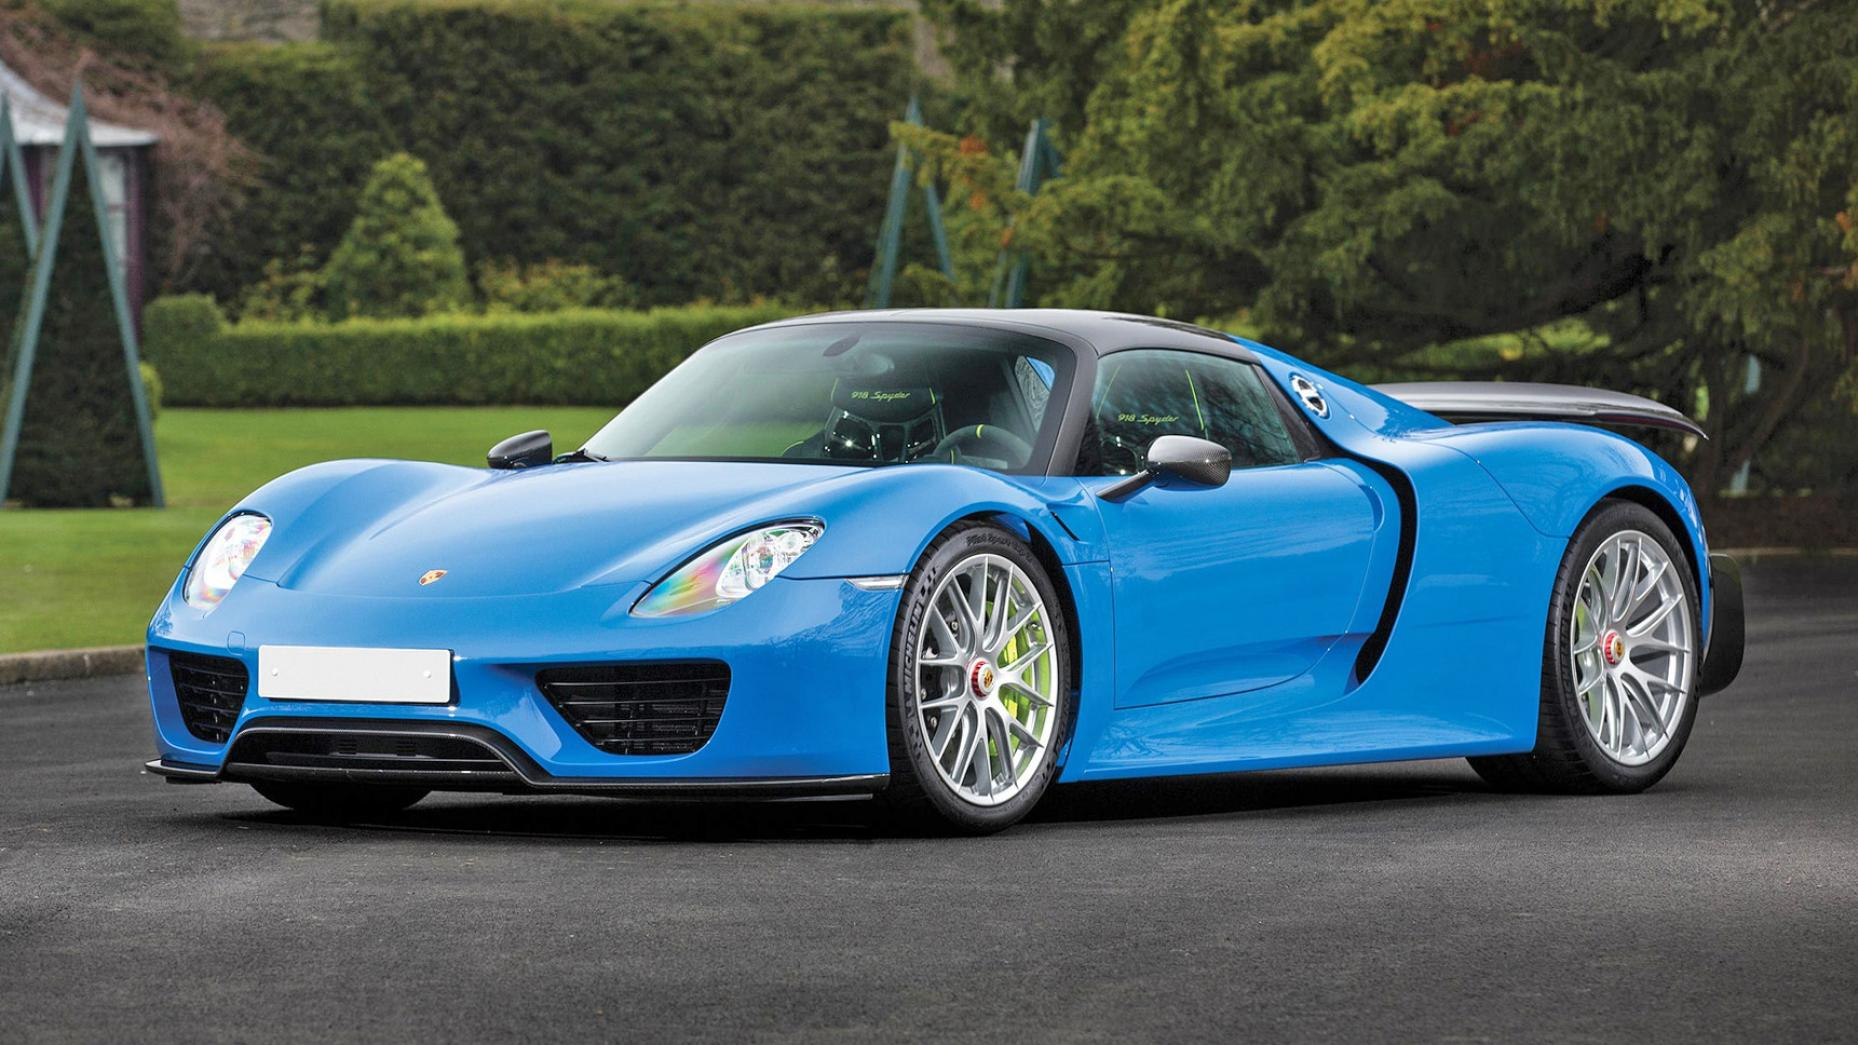 por1 Marvelous Porsche 918 Spyder Mark Webber Cars Trend